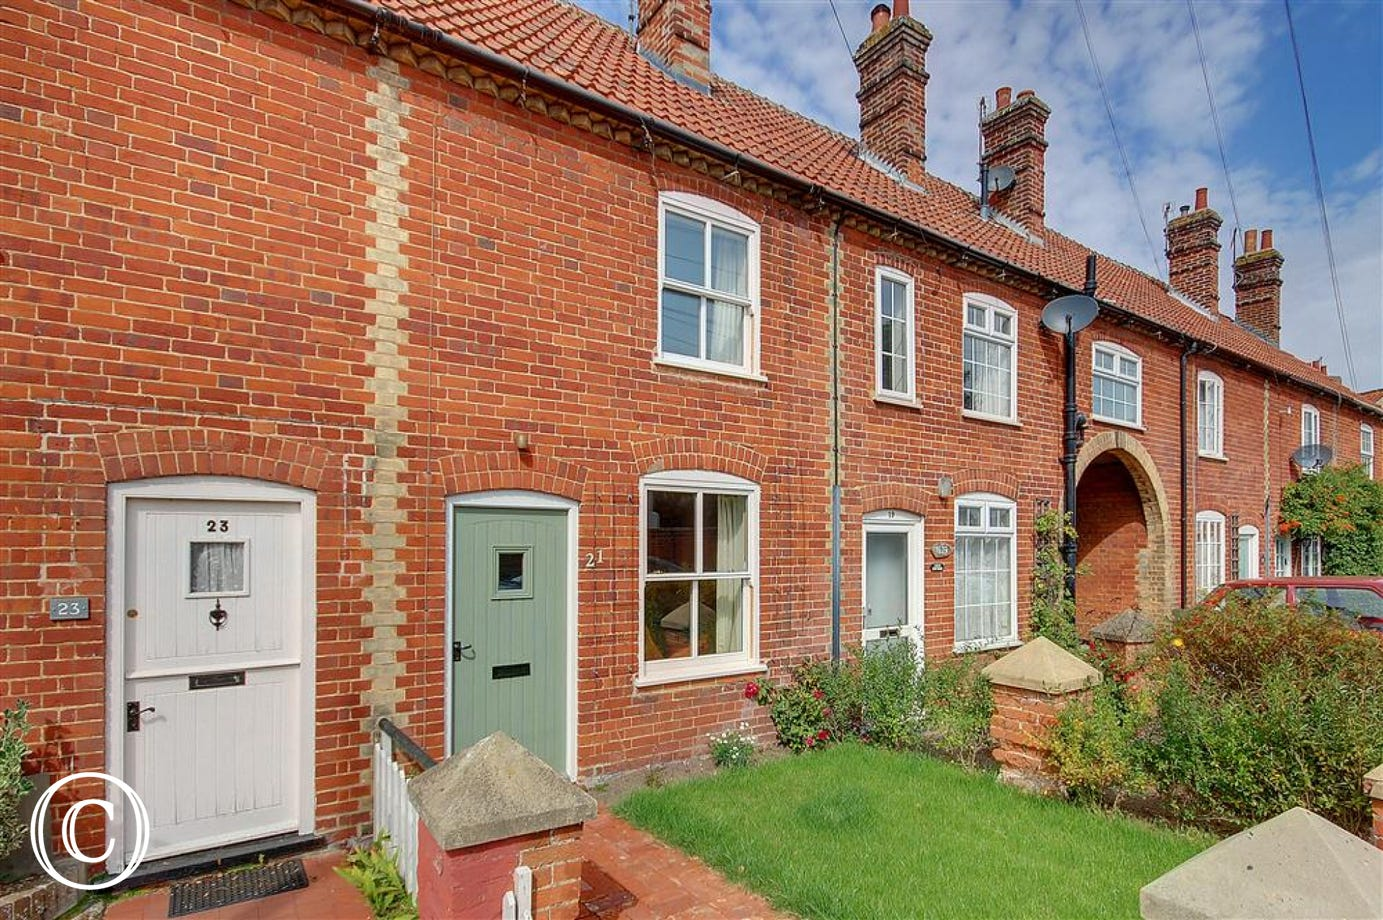 Ideally situated just moments from Aldeburgh beach front, this victorian terraced property is an ideal holiday location.